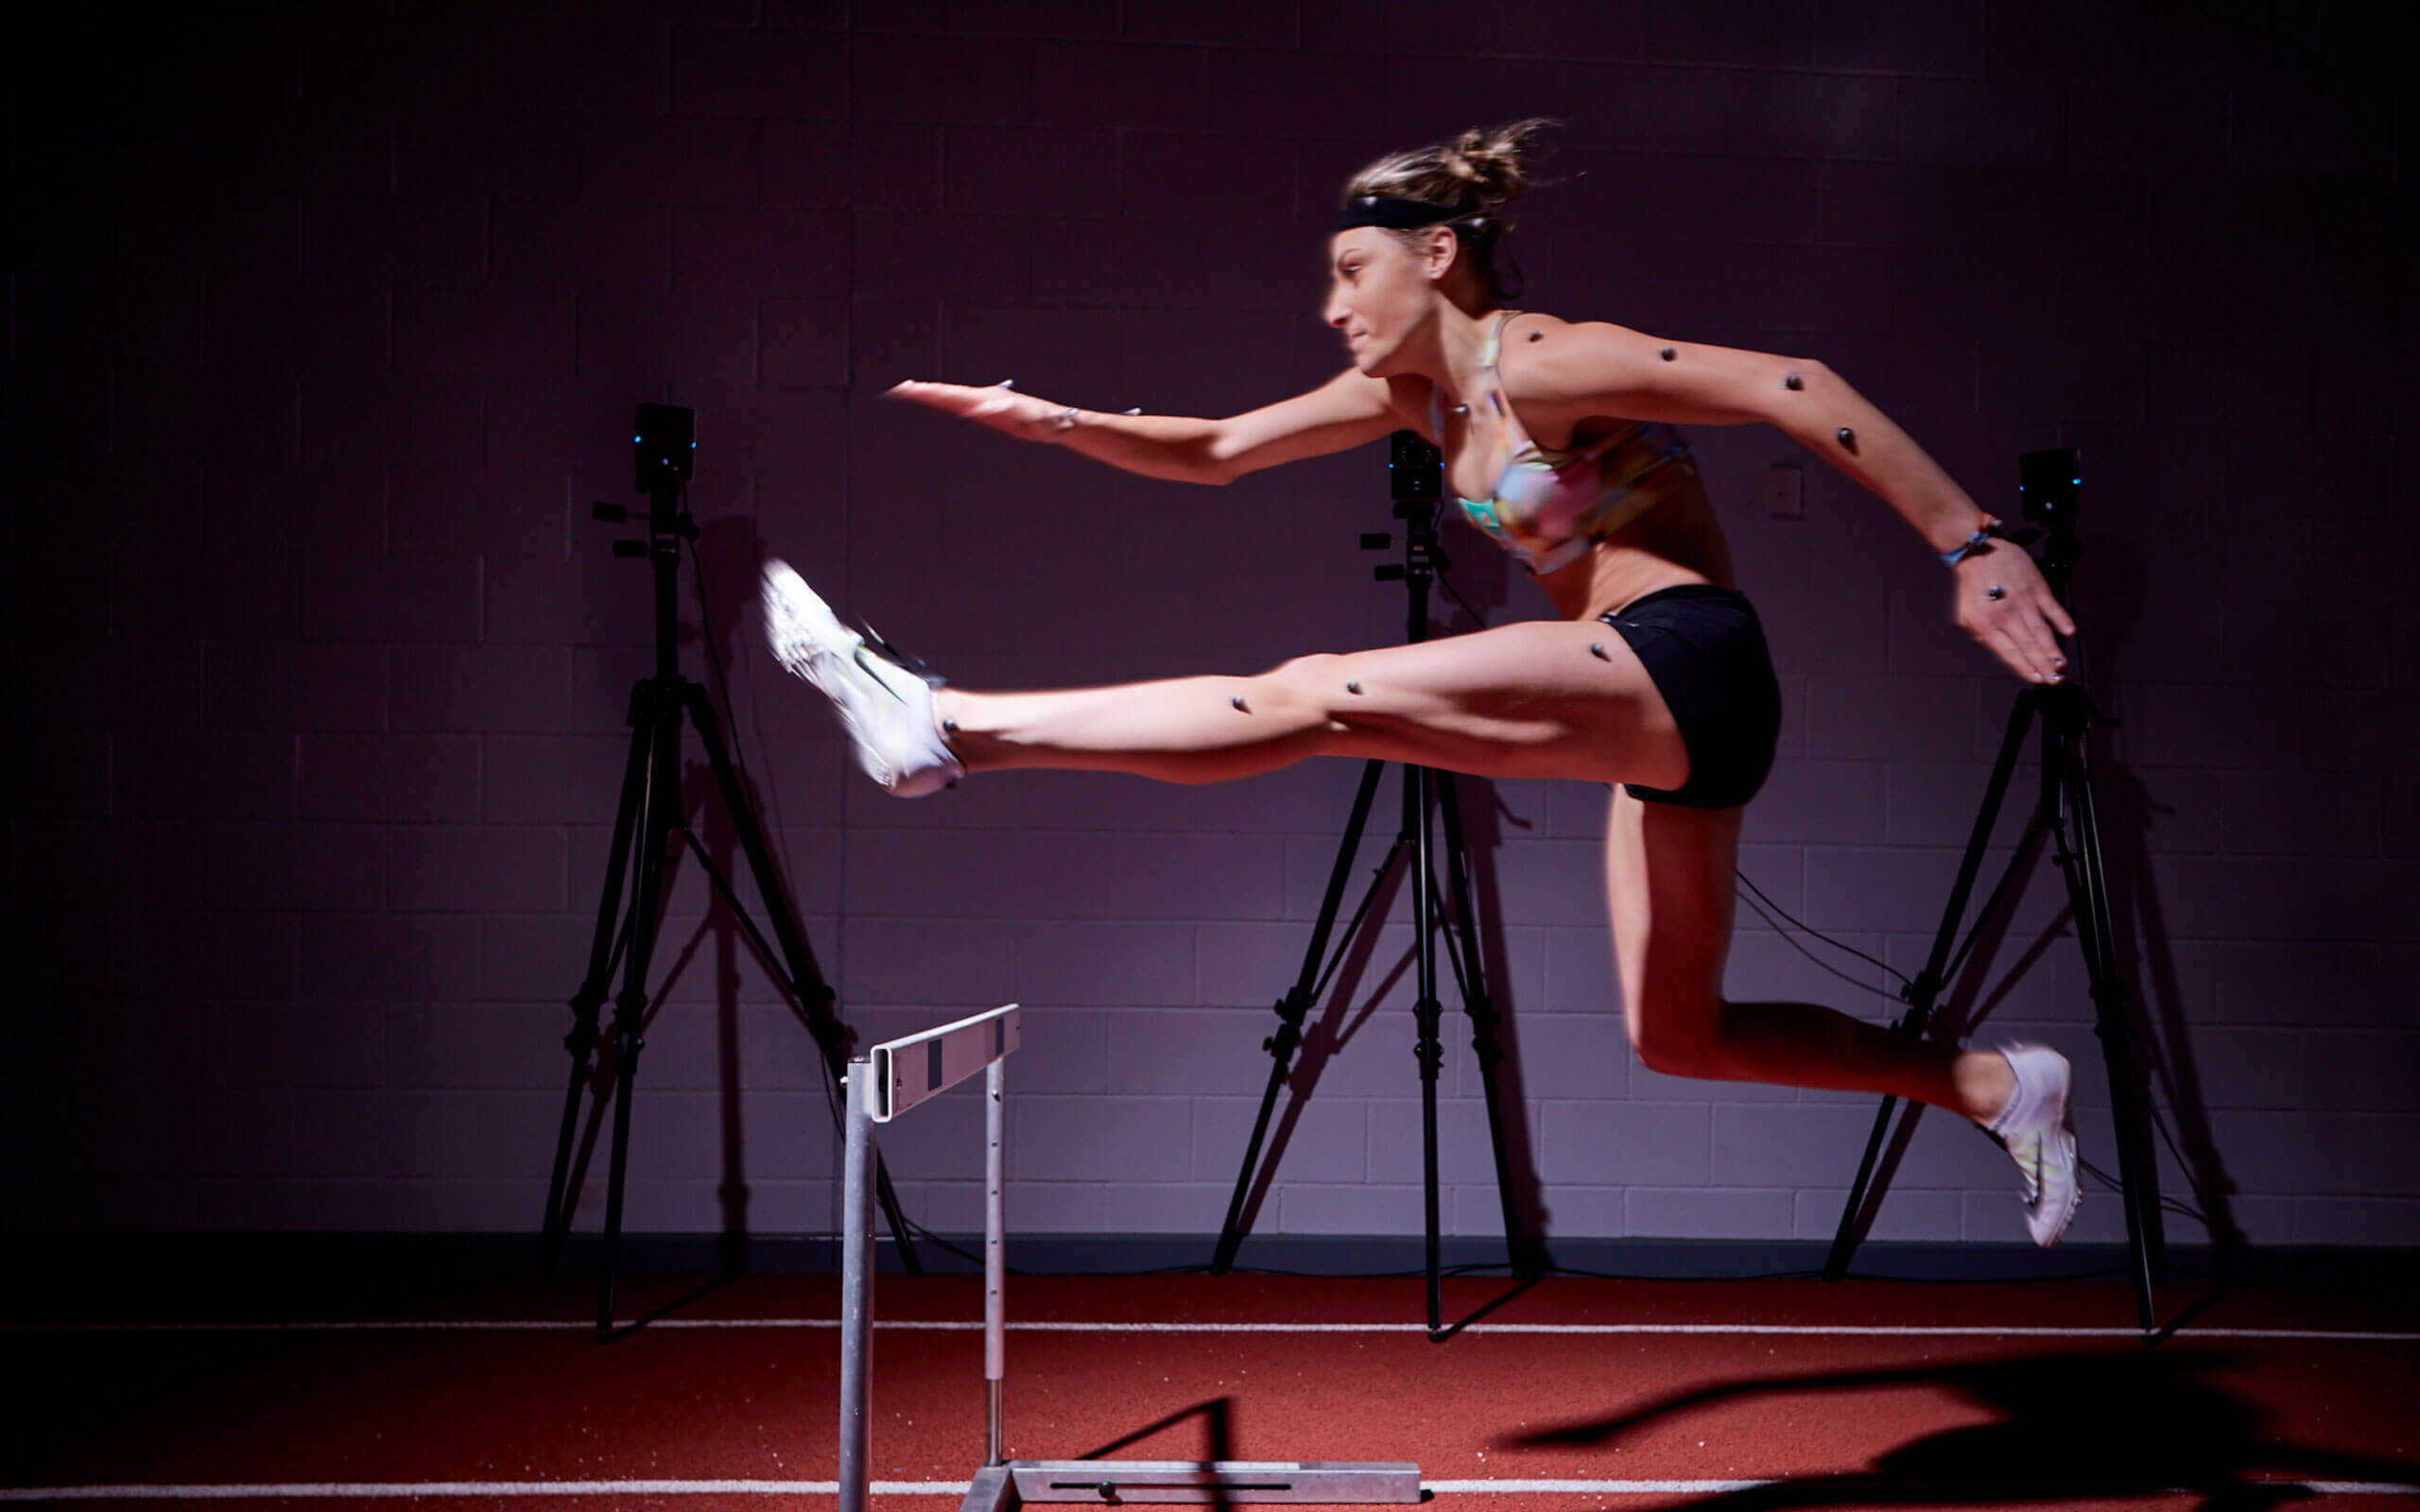 A lady jumping over a hurdle whilst her movements are being monitored